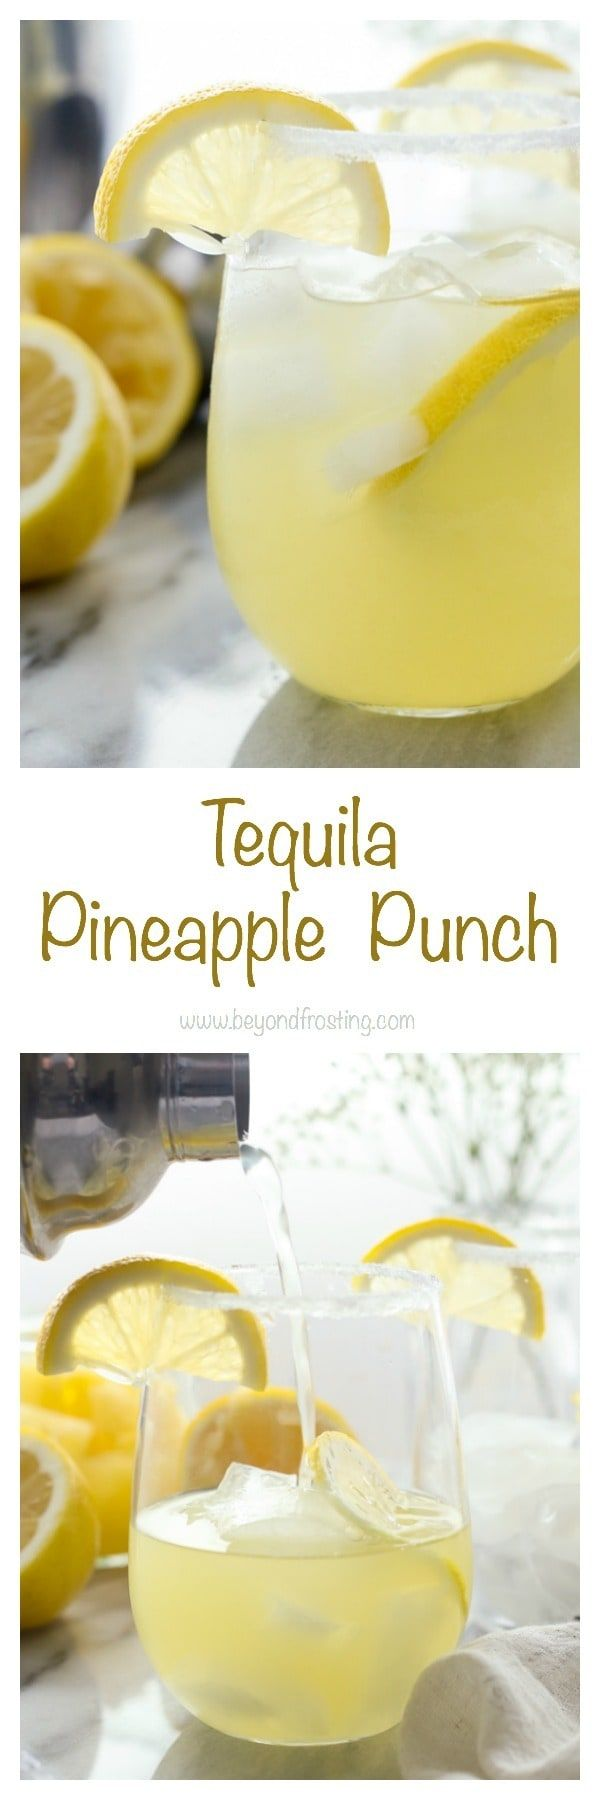 This Tequila Pineapple Punch is made with tequila, coconut rum, pineapple juice a splash of lemon juice and a little seltzer to top it off. It's the perfect balance of sweet verse tart.